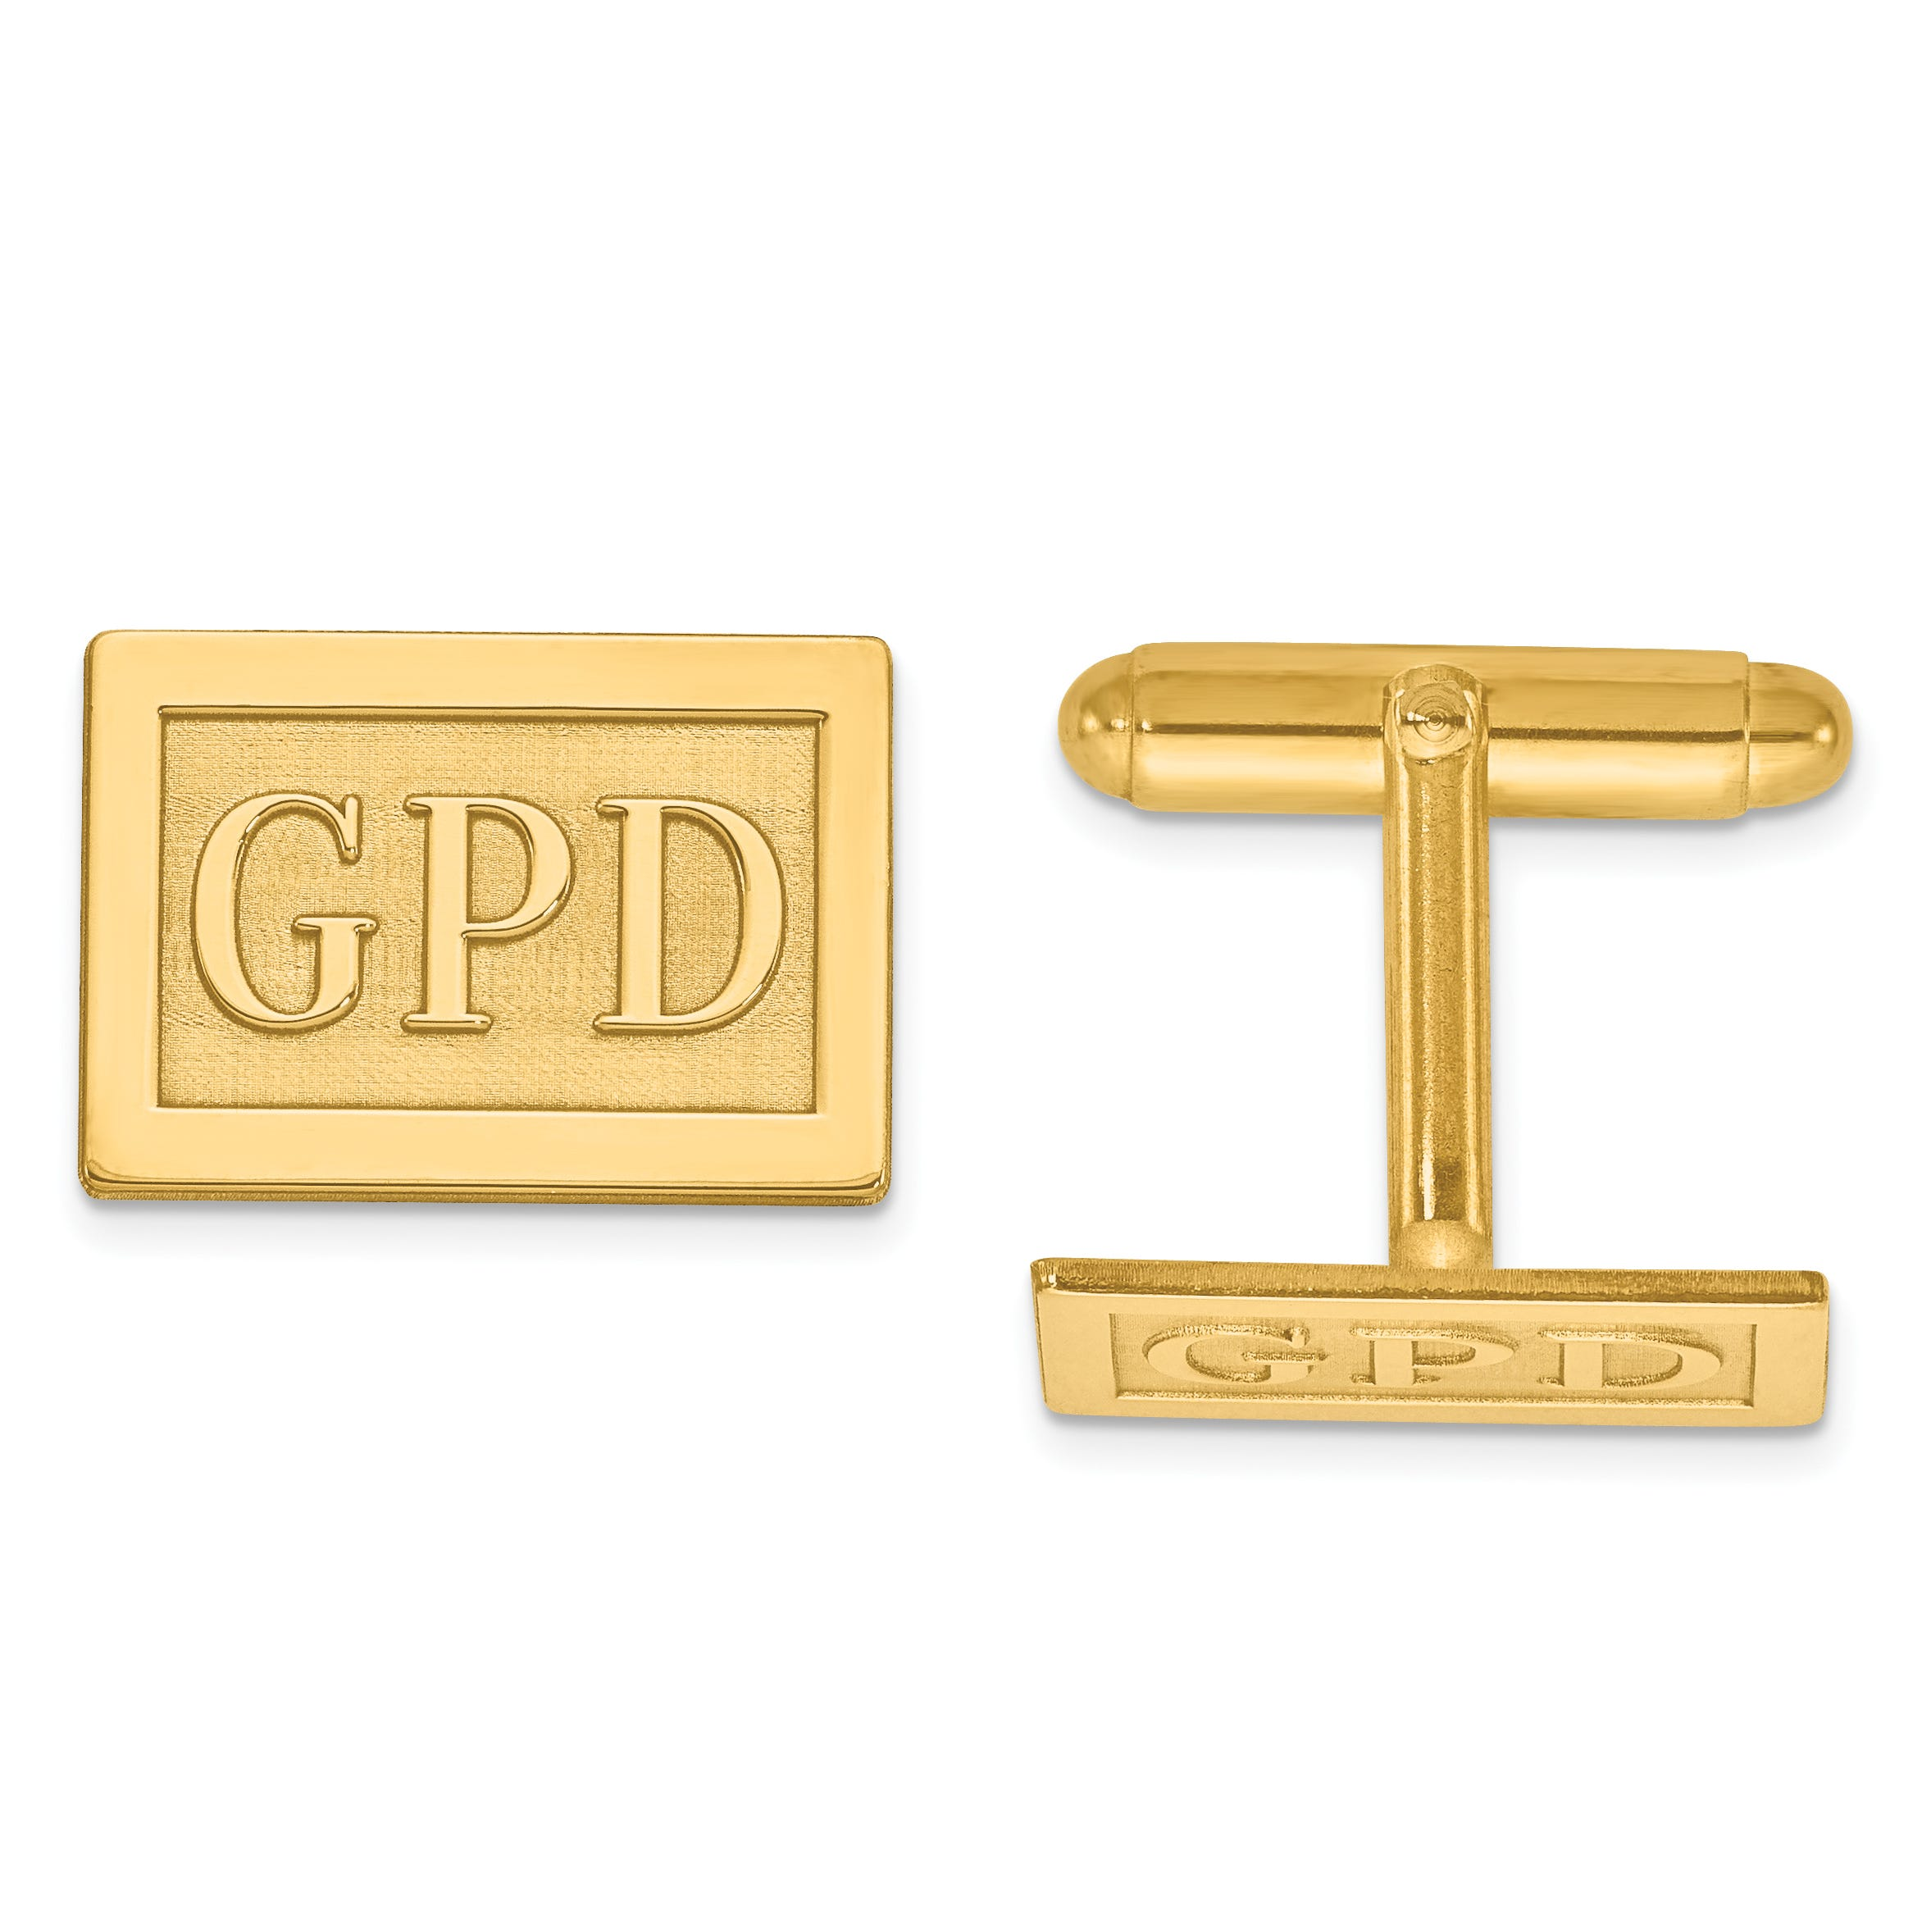 Raised Letters Rectangle Monogram Cuff Links in 14k Yellow Gold (up to 3 letters)